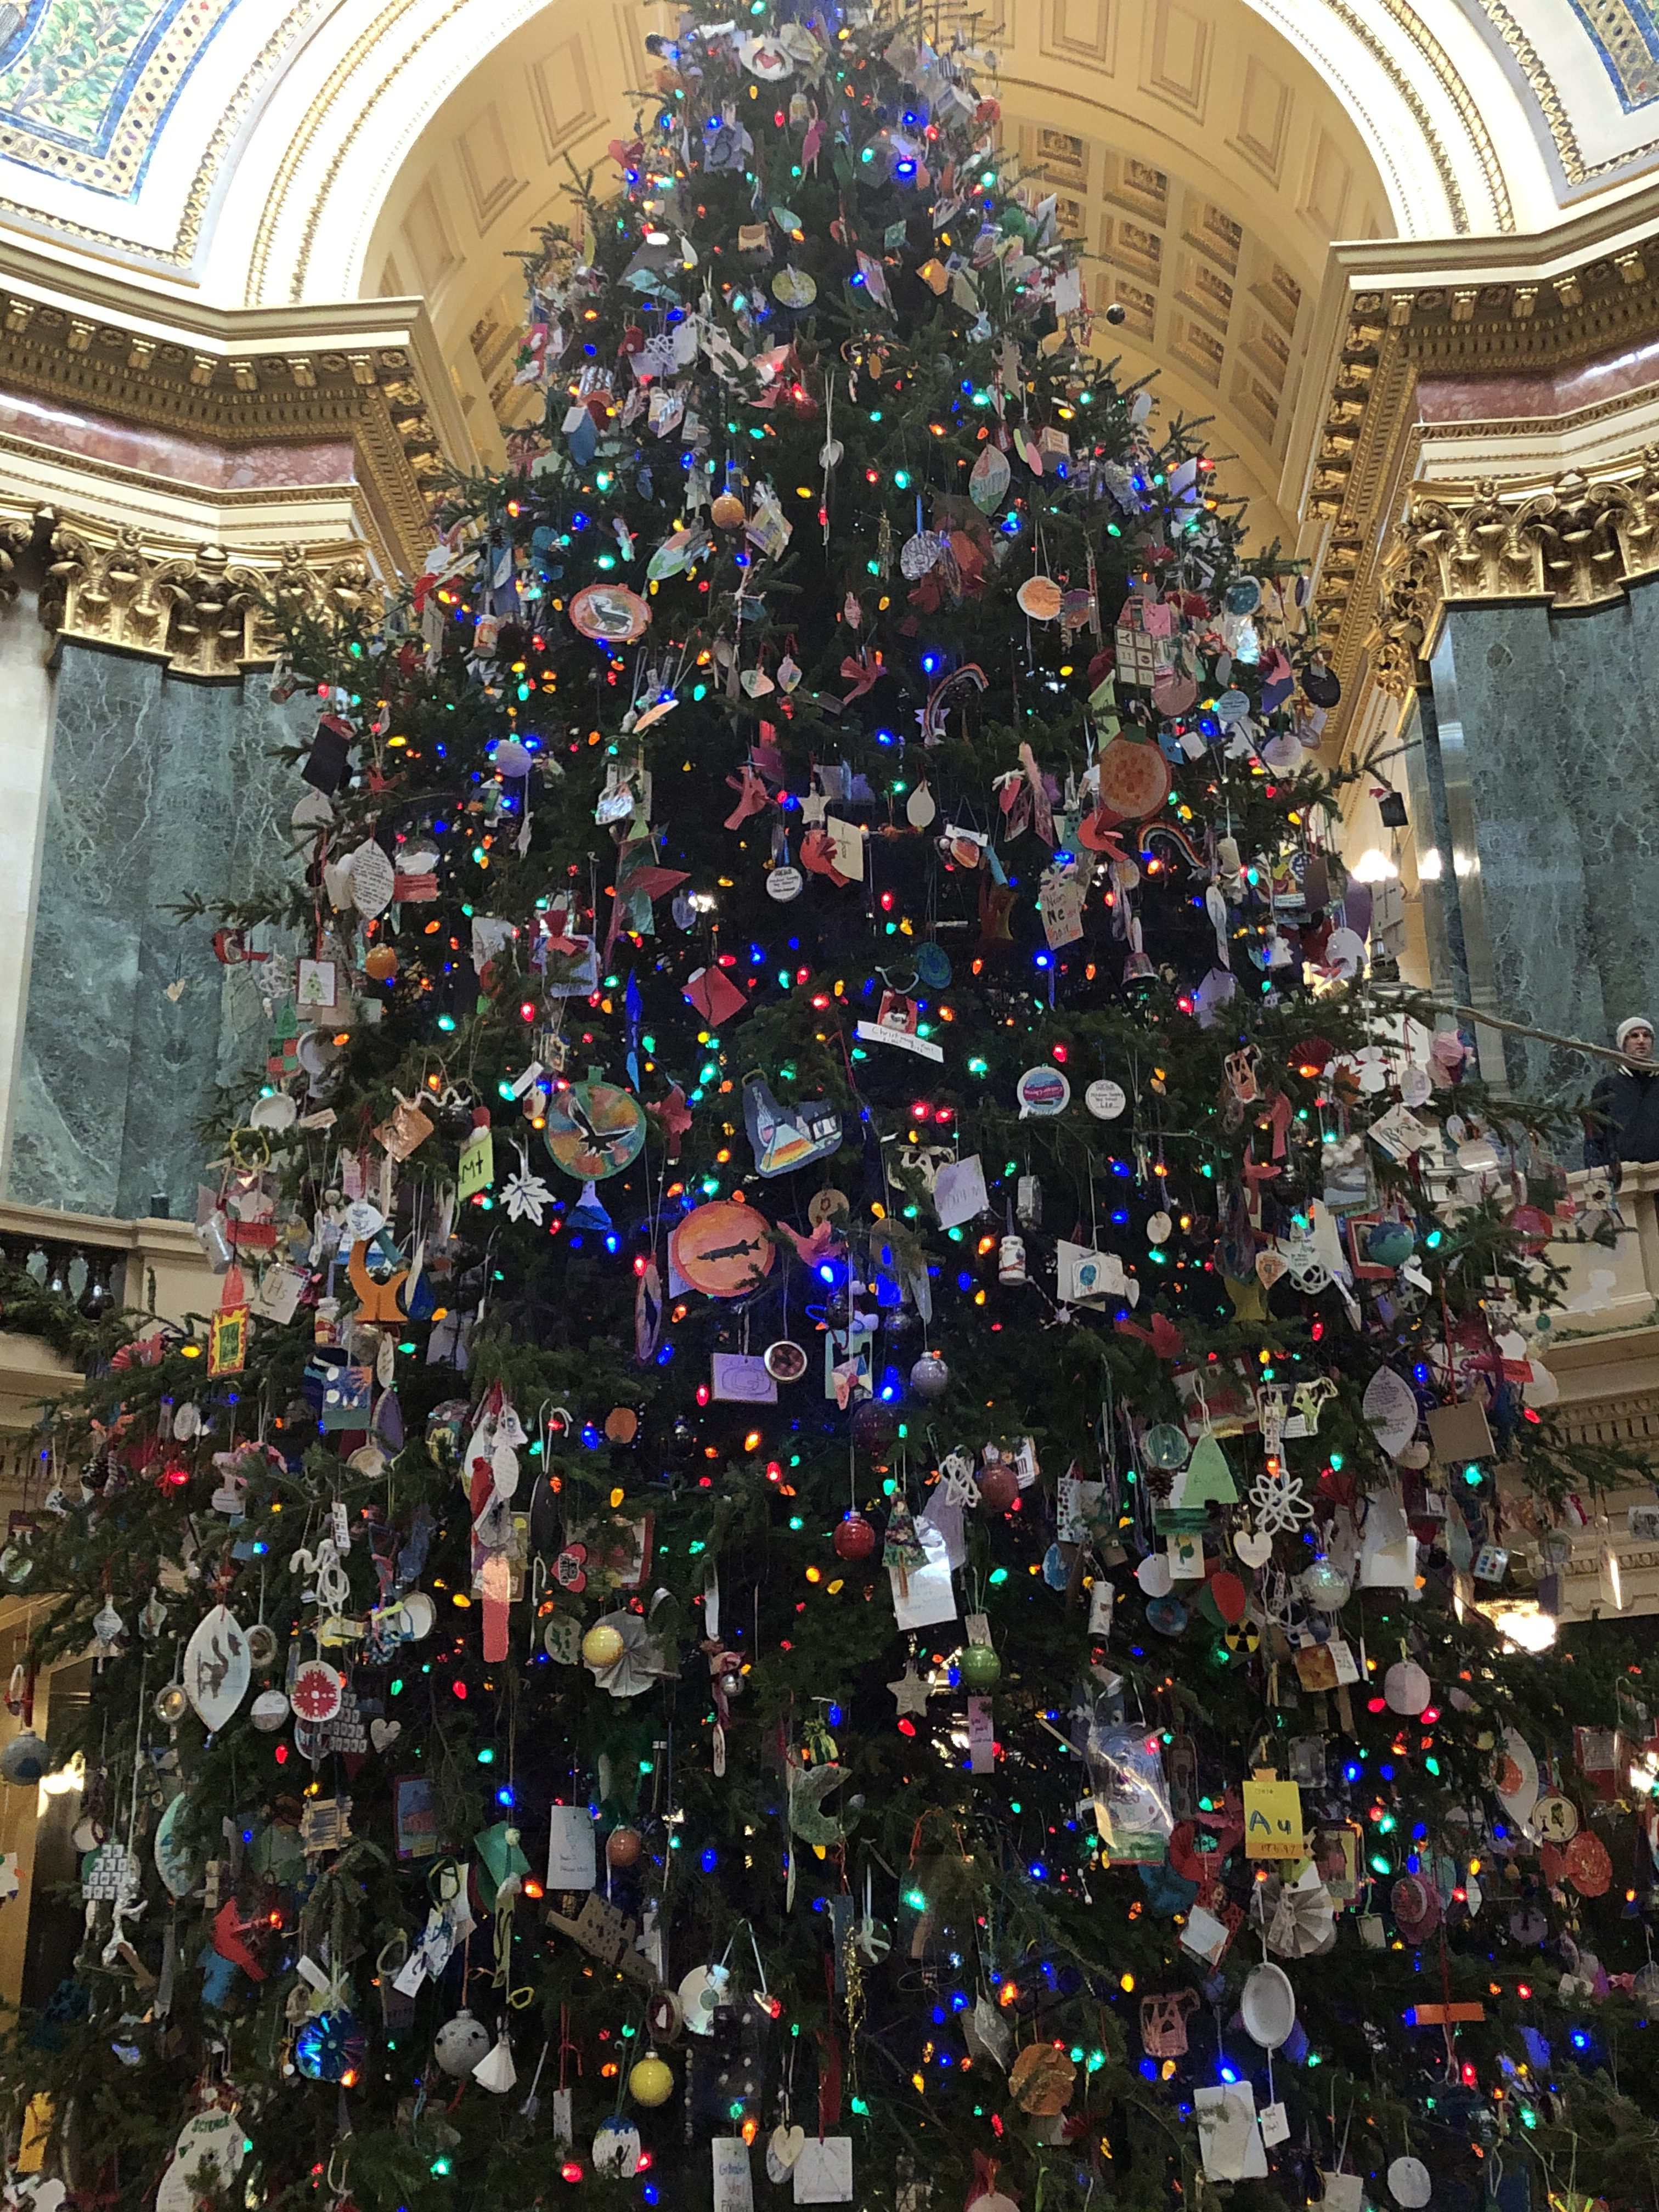 Wisconsin State Capitol Christmas Tree 2020 The 2020 War On Christmas? » Urban Milwaukee